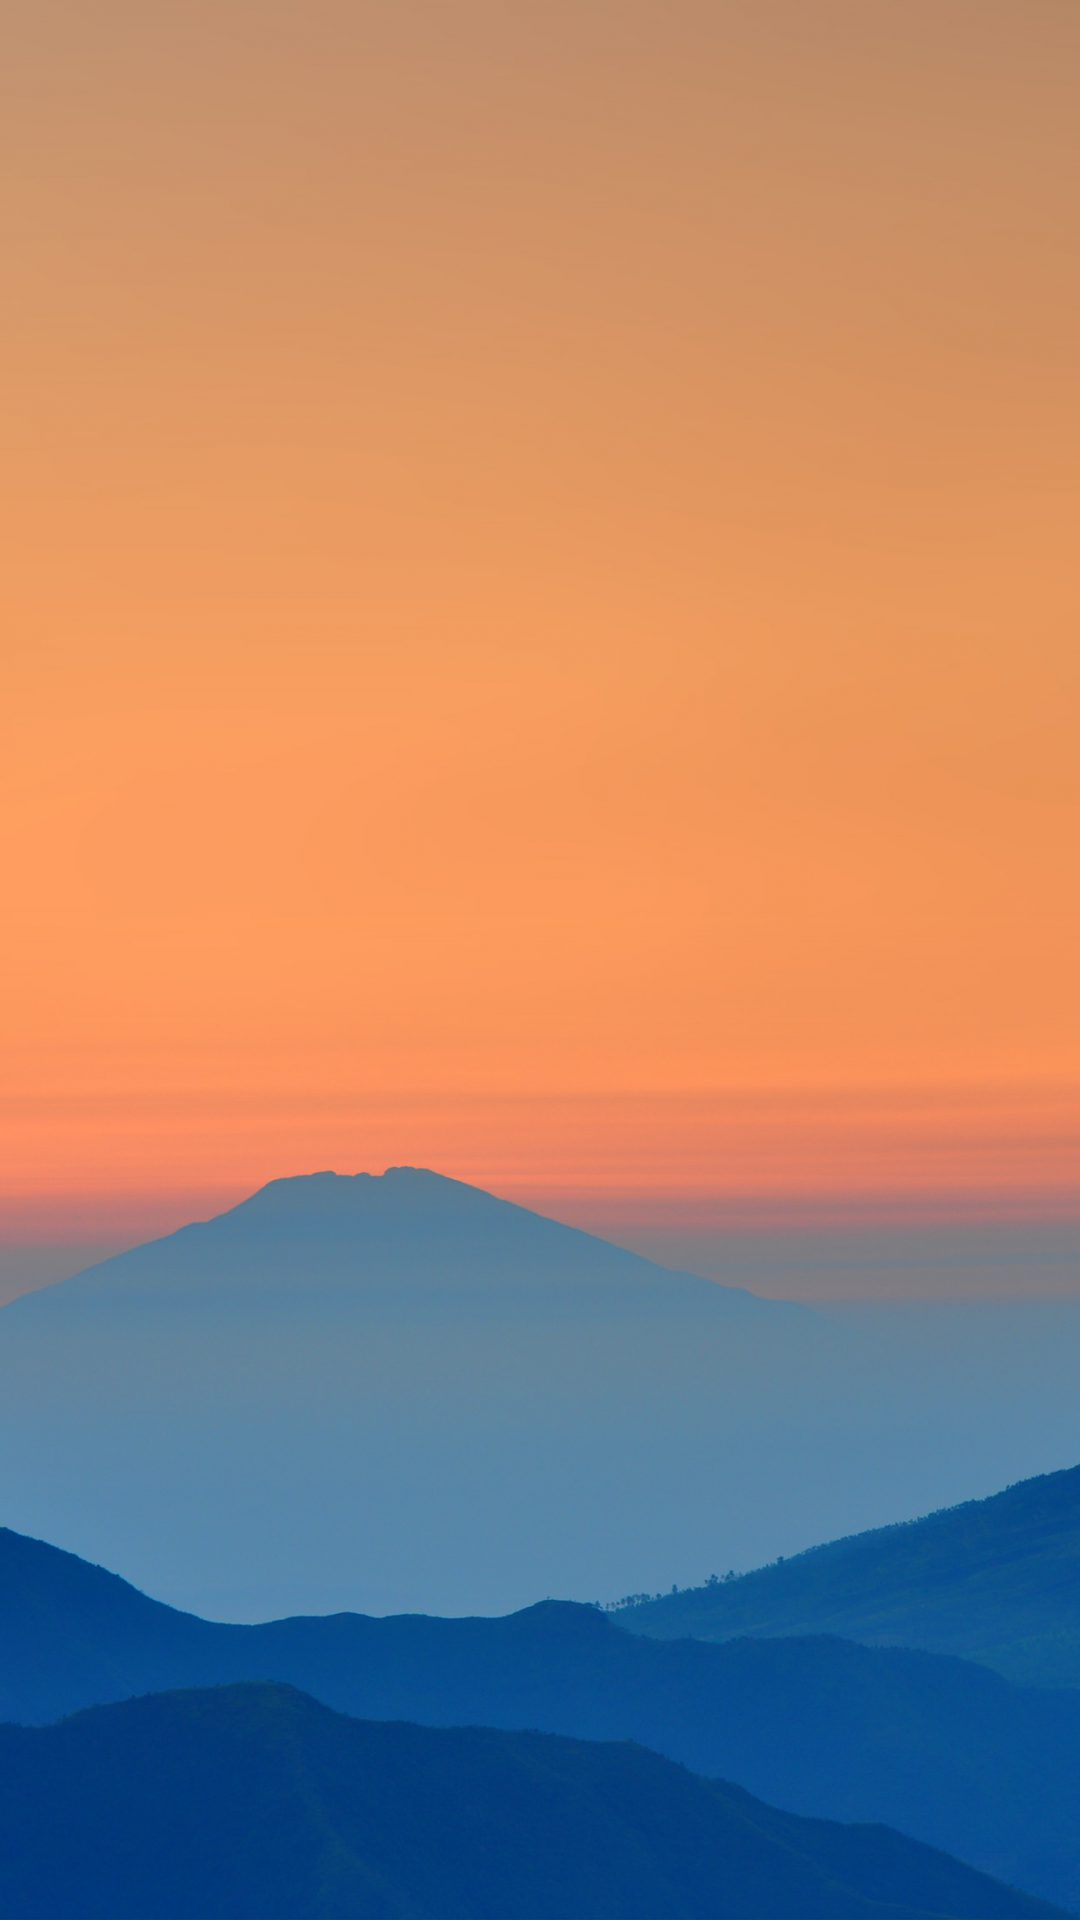 Landscape Sunrise Mountain Nature Red Blue